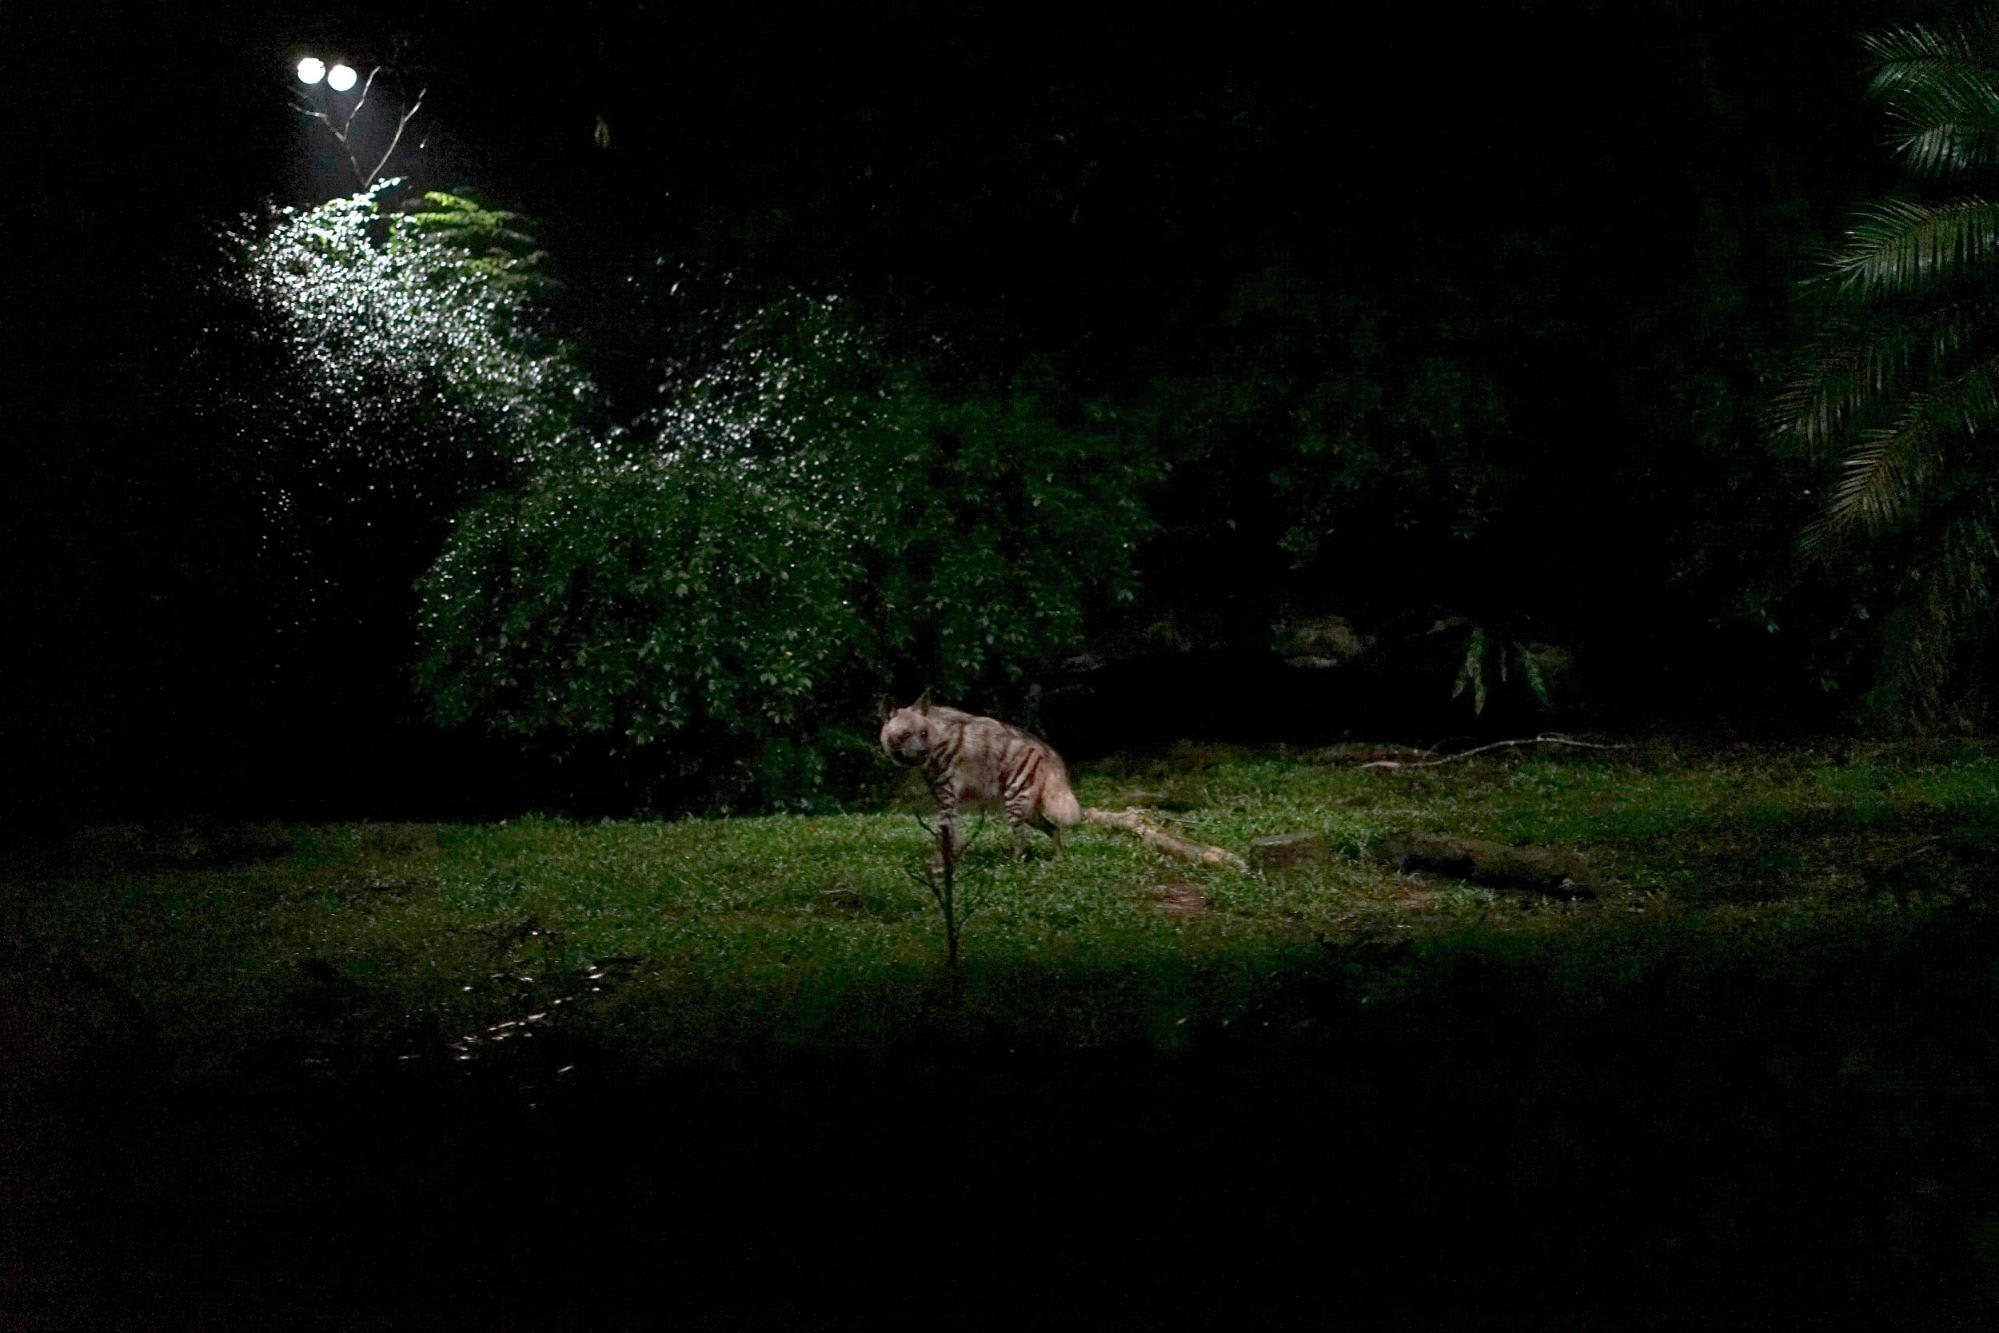 night safari singapore: linh cẩu vằn